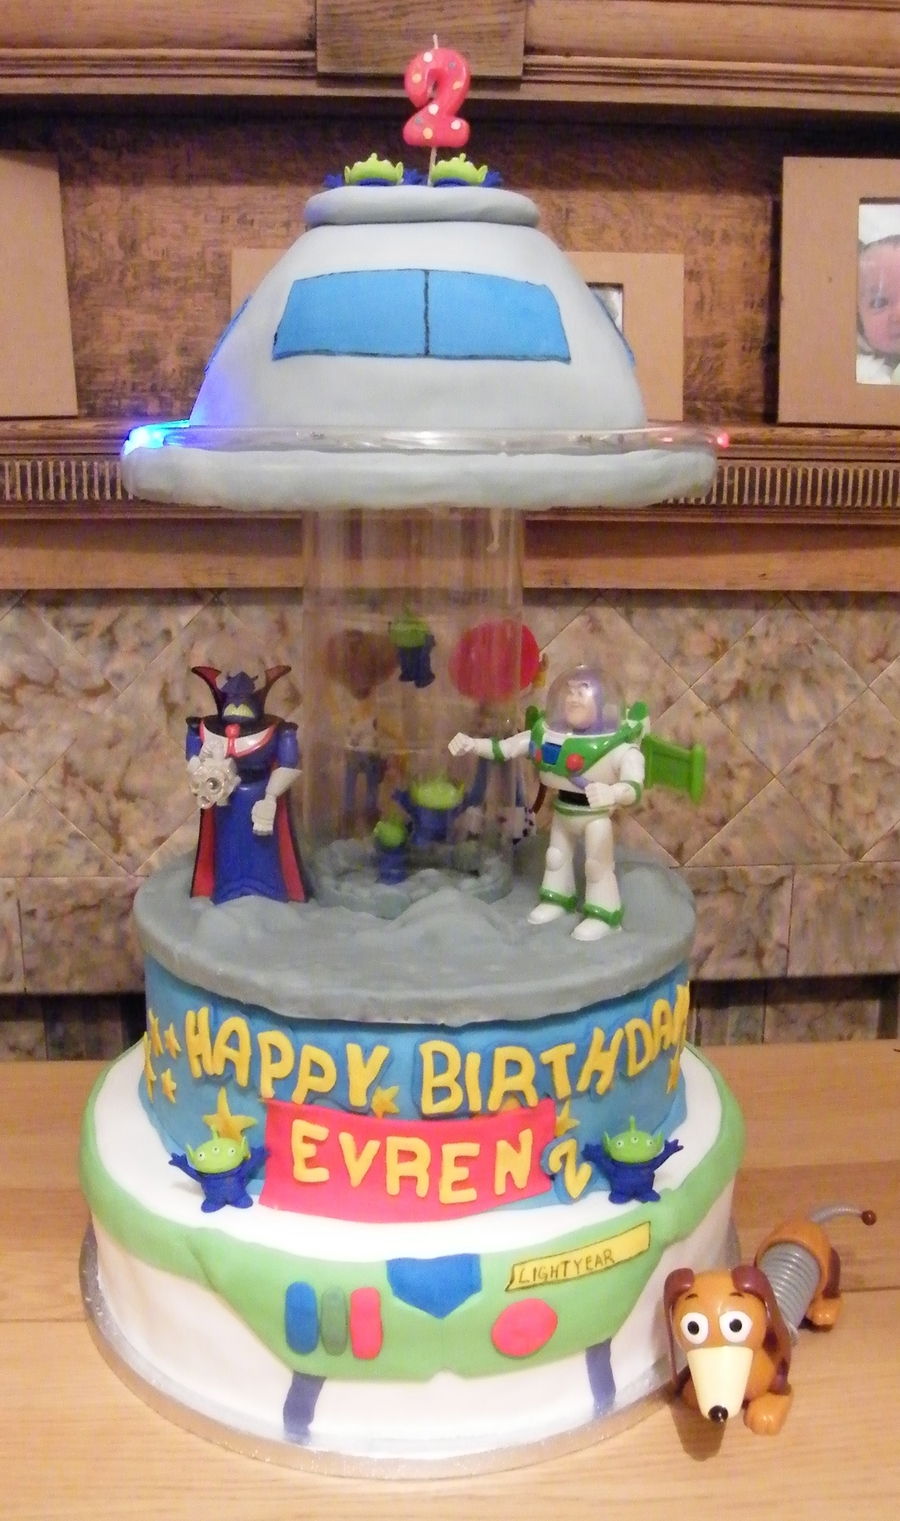 Toy Story Alien Ufo Invasion Spinning Musical Carousel Birthday Cake On Central